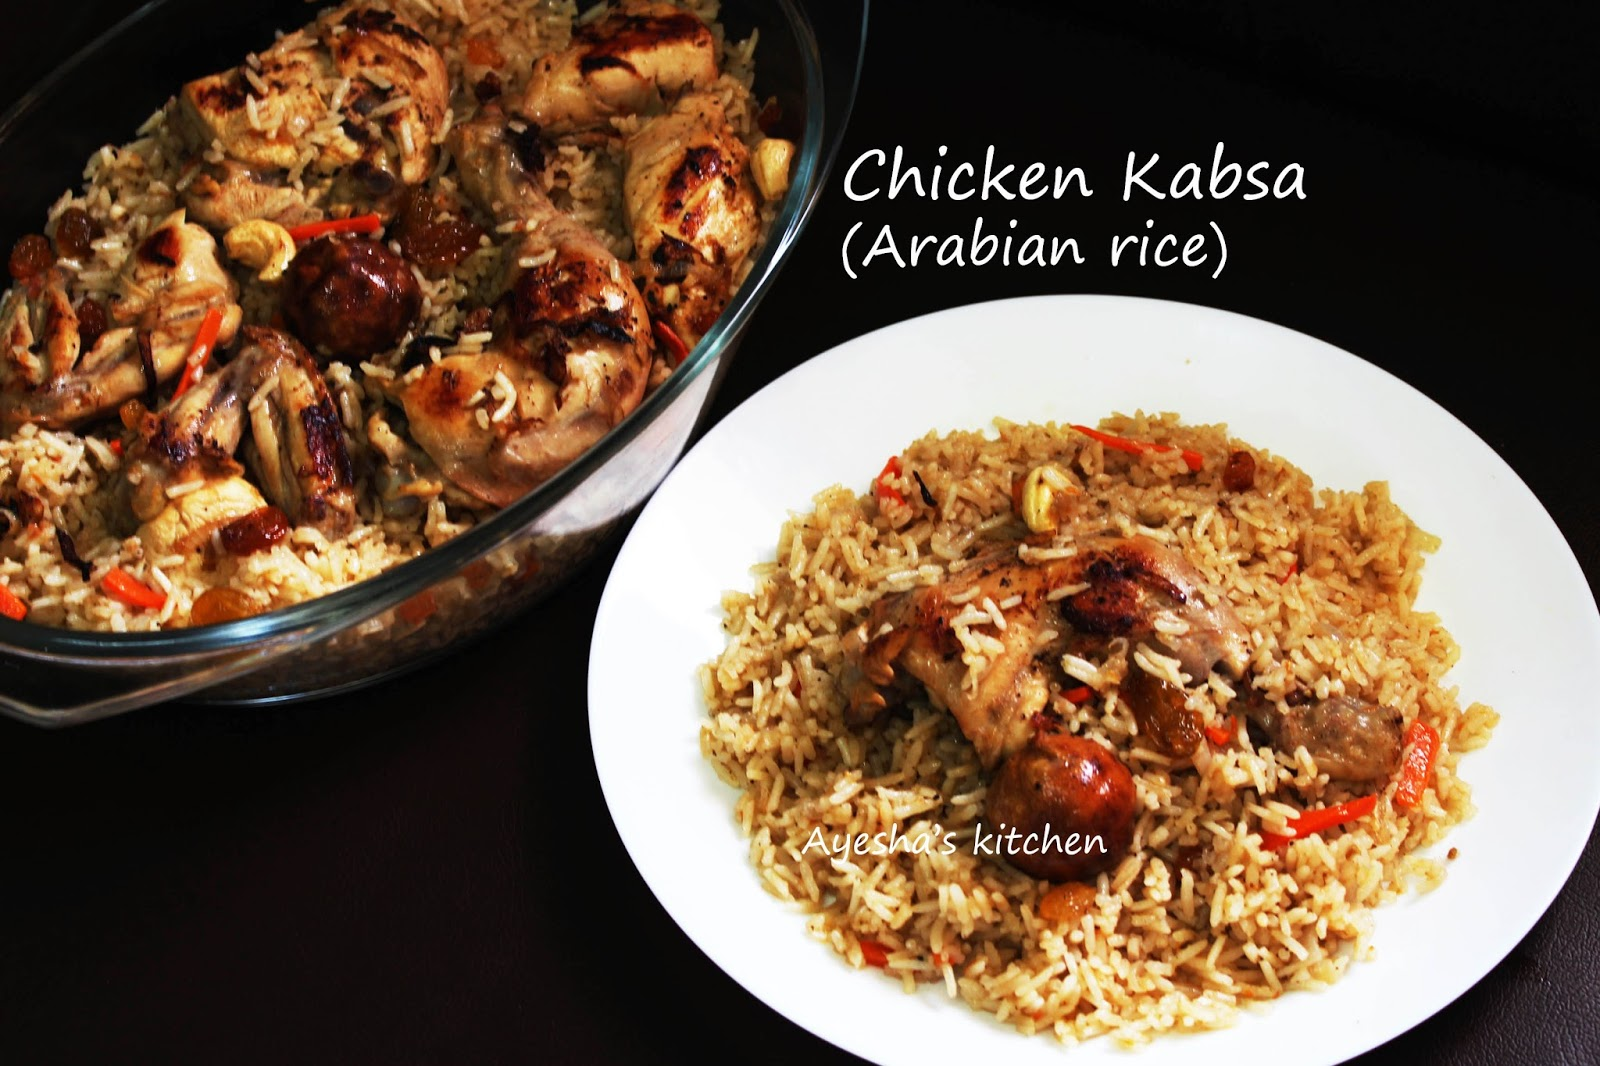 Kabsa recipe chicken kabsa arab rice recipe chicken kabsa recipe rice recipes forumfinder